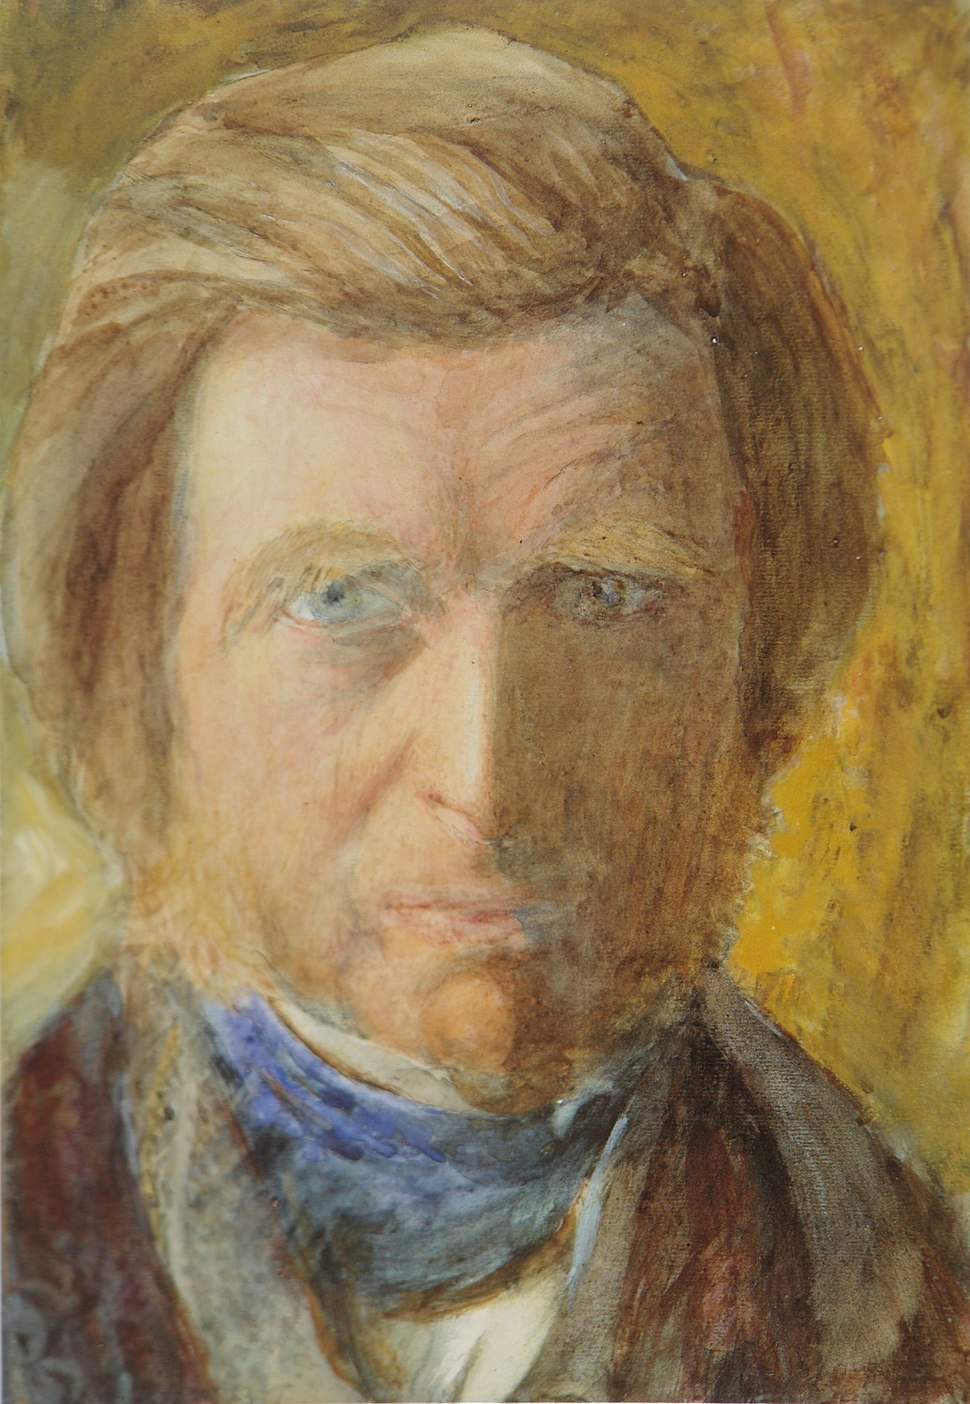 Ruskin Self Portrait with Blue Neckcloth